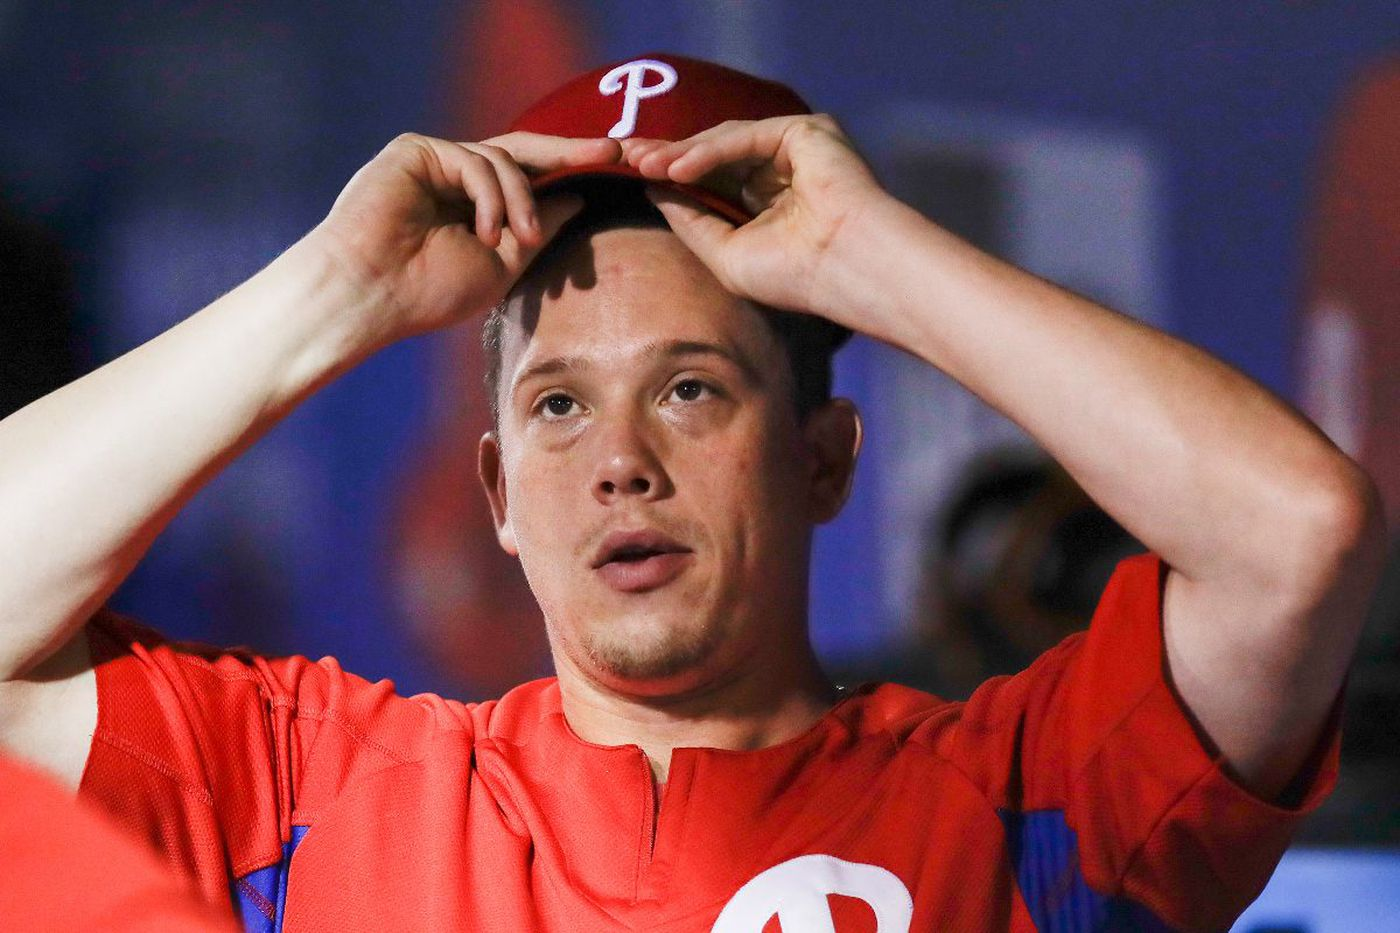 Jeremy Hellickson's departure from Philly delayed due to car accident